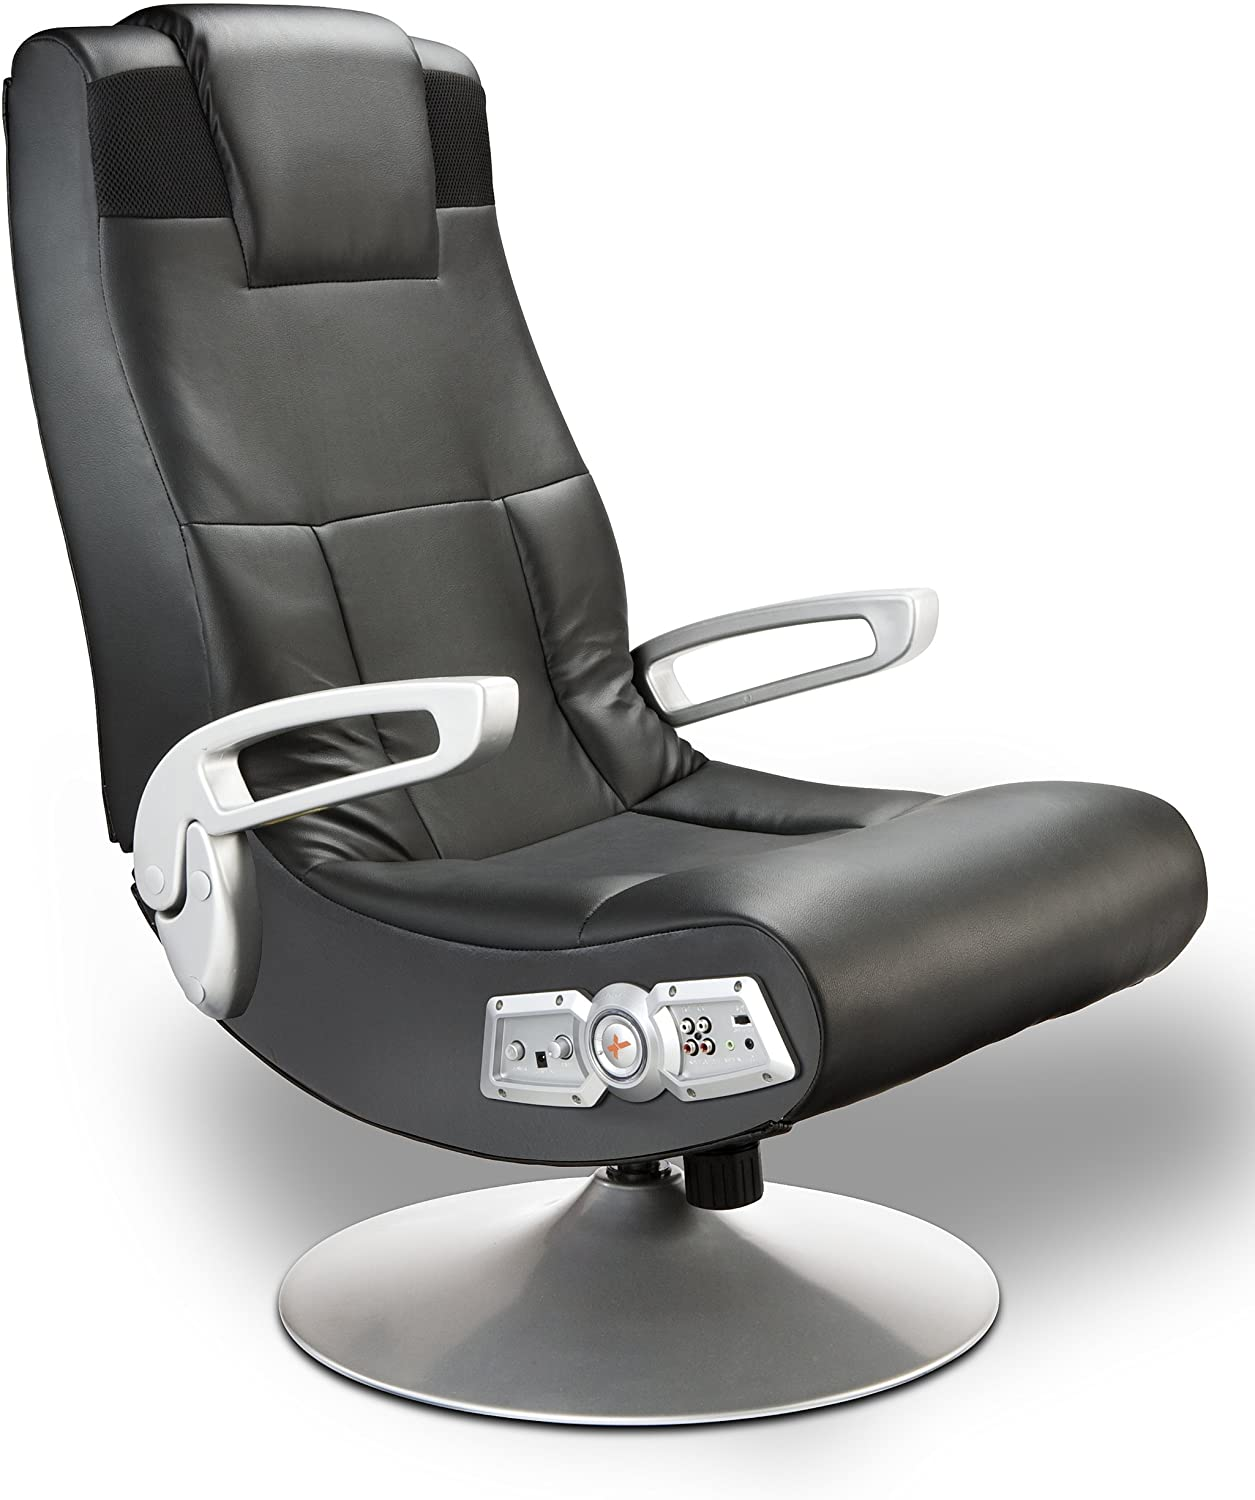 X Rocker SE 2.1 Leather Pedestal Base Video Gaming Chair